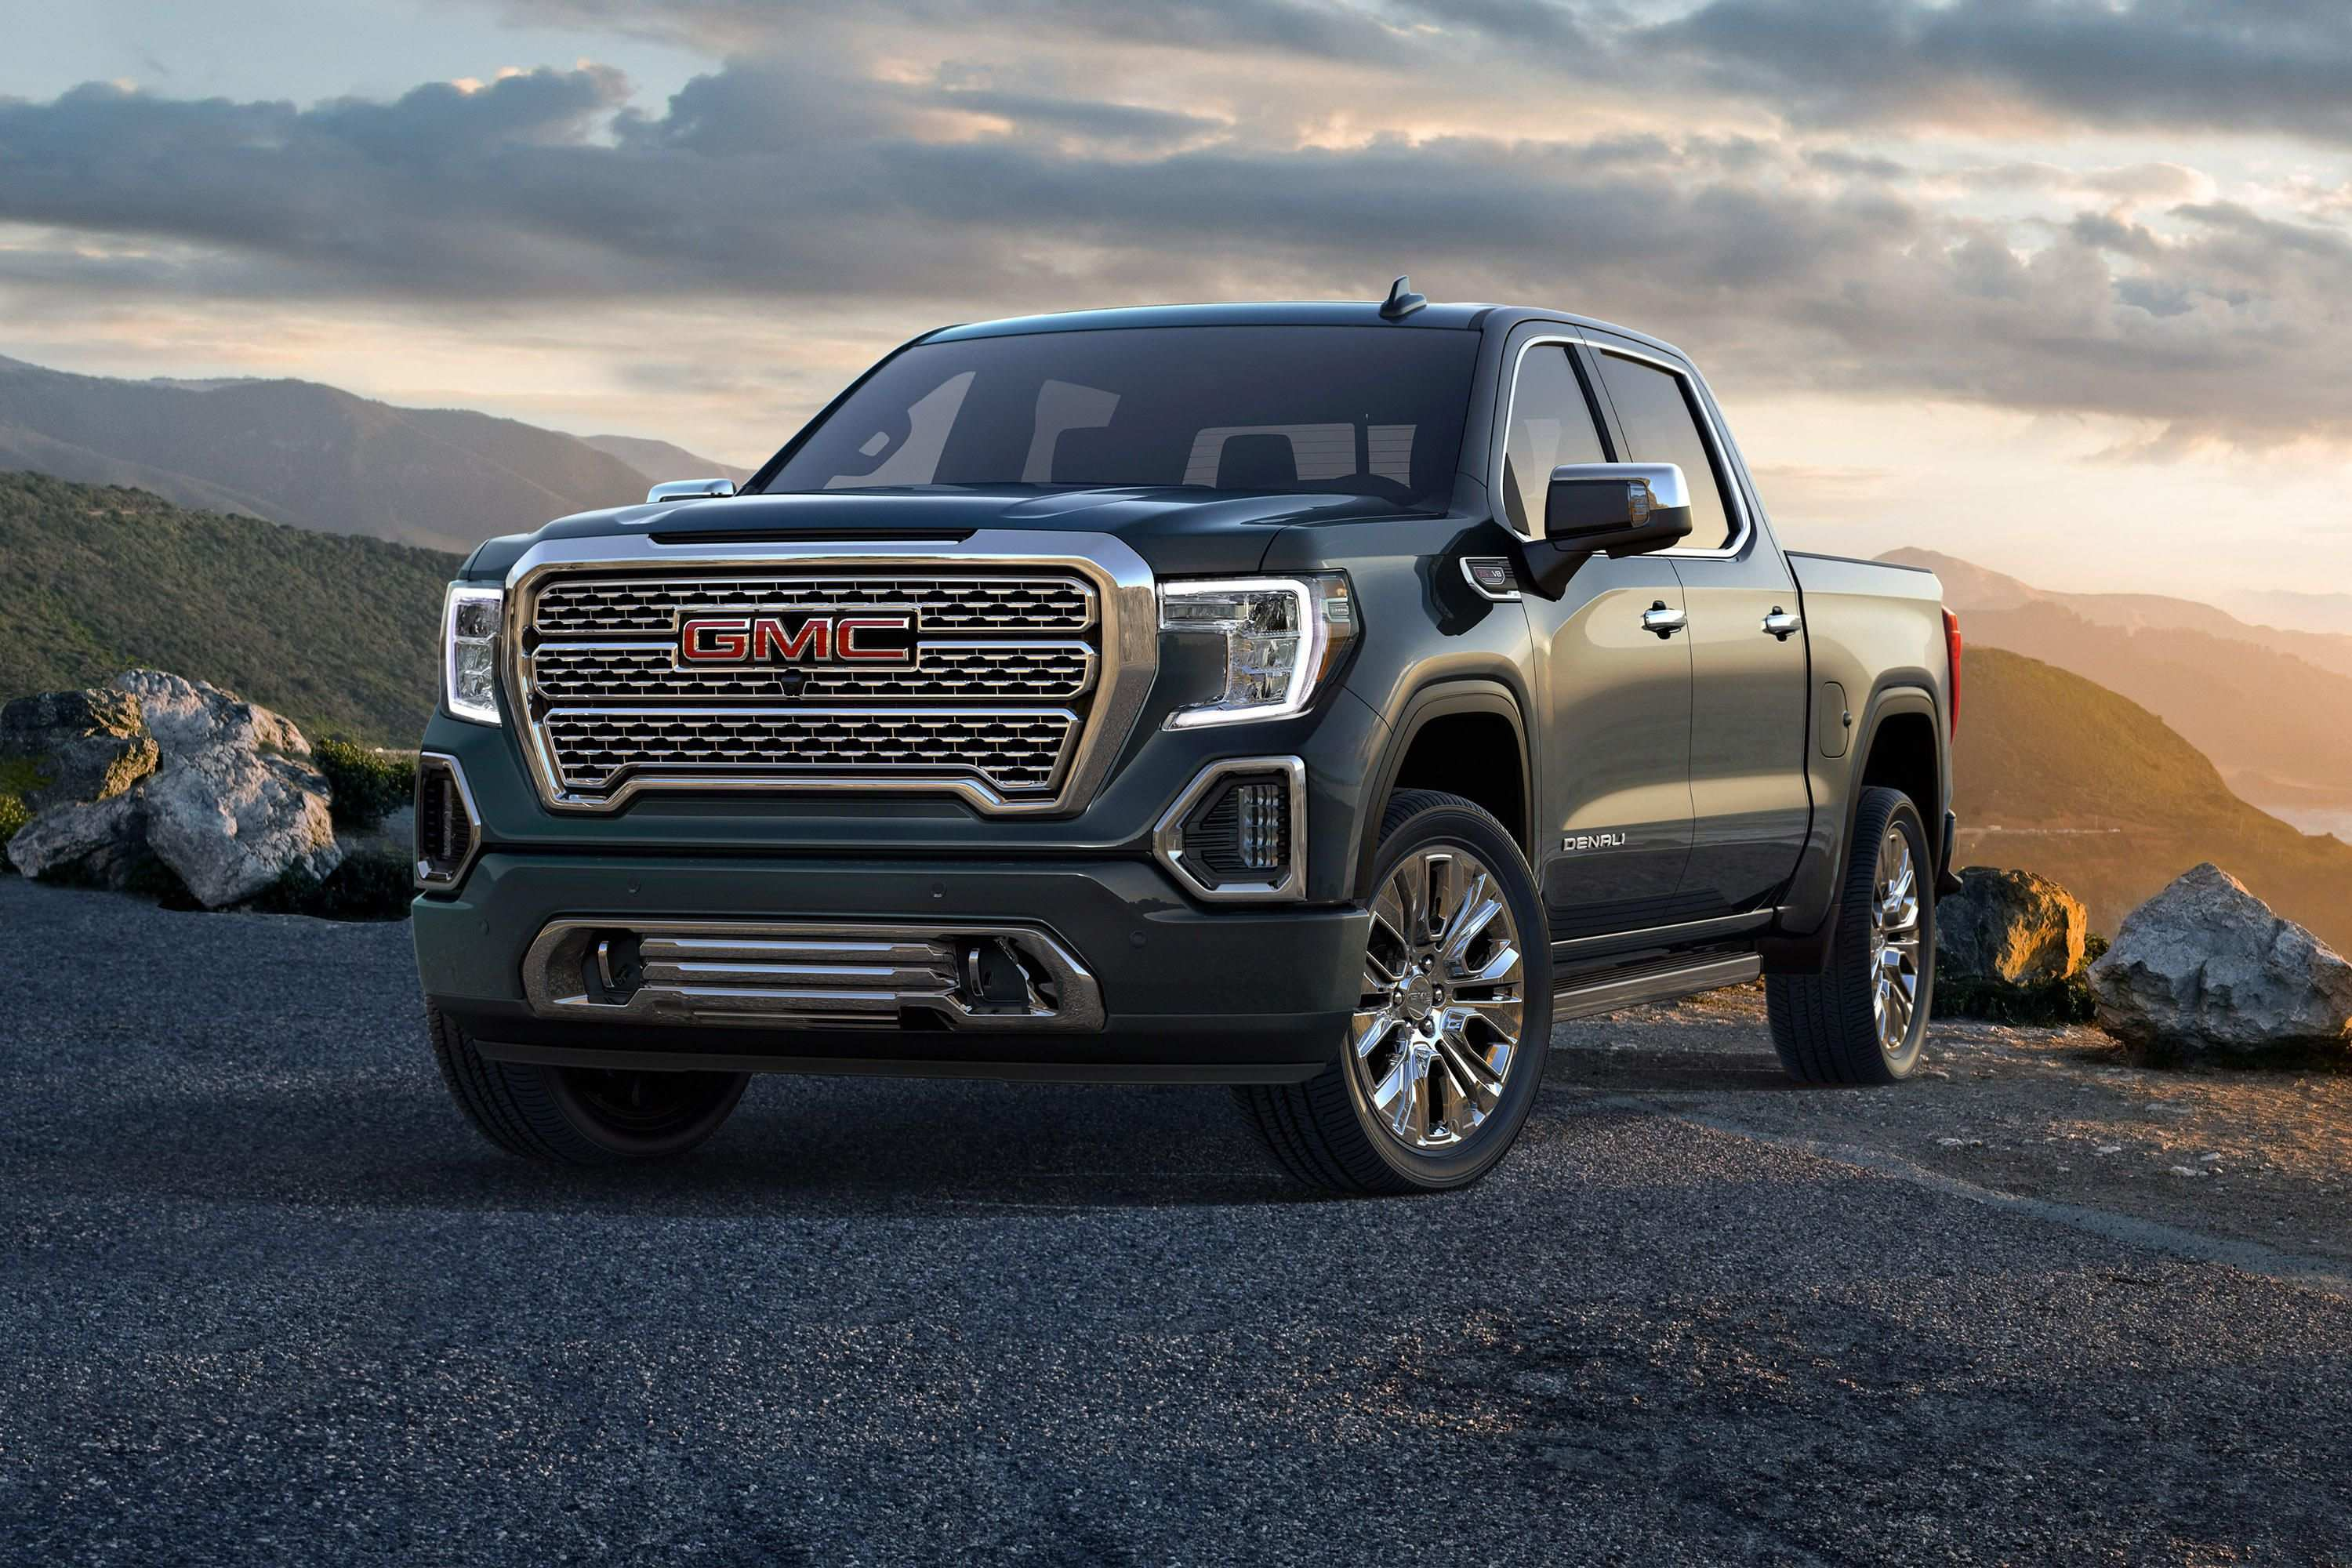 59 All New 2019 Gmc Truck Concept with 2019 Gmc Truck